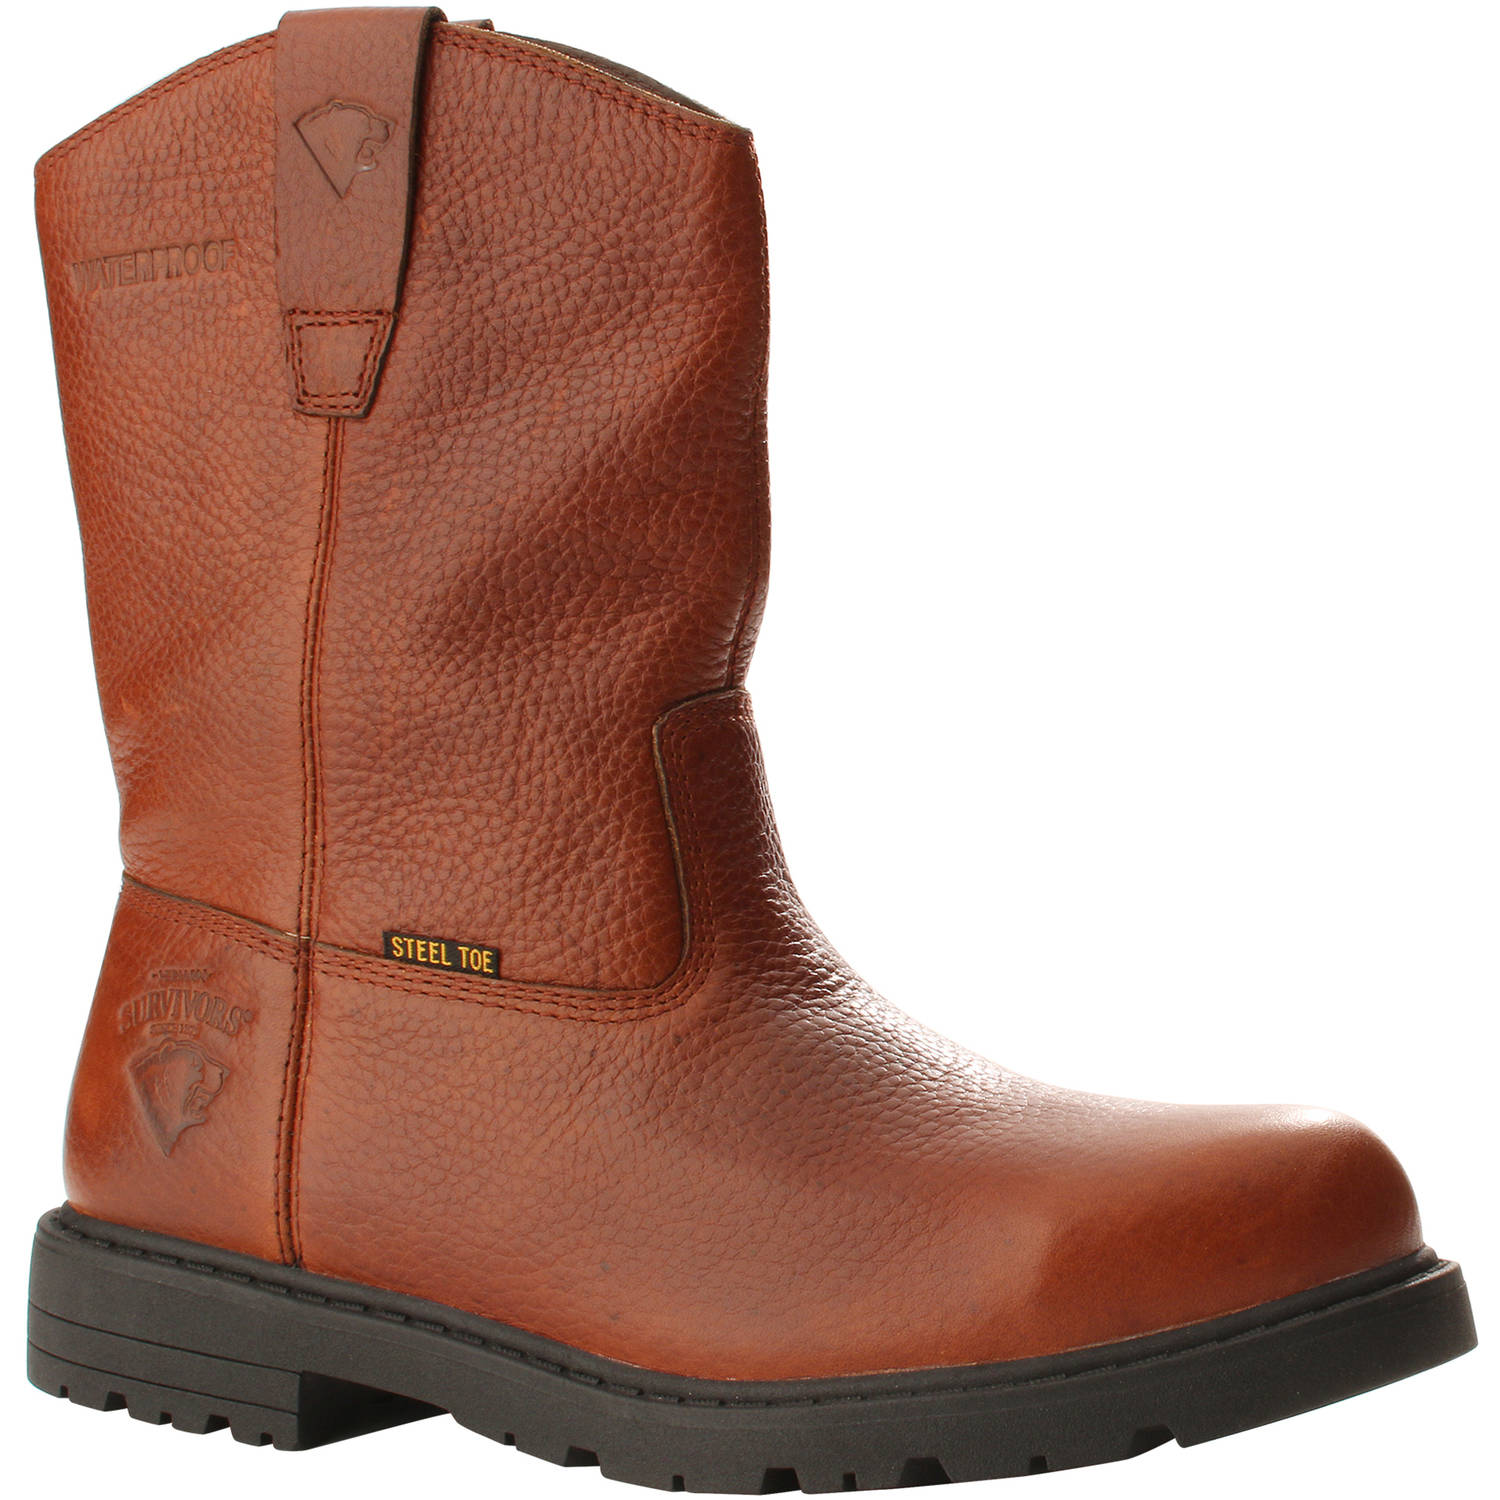 Herman Survivors Men's Ranch Steel Toe Waterproof Workboot